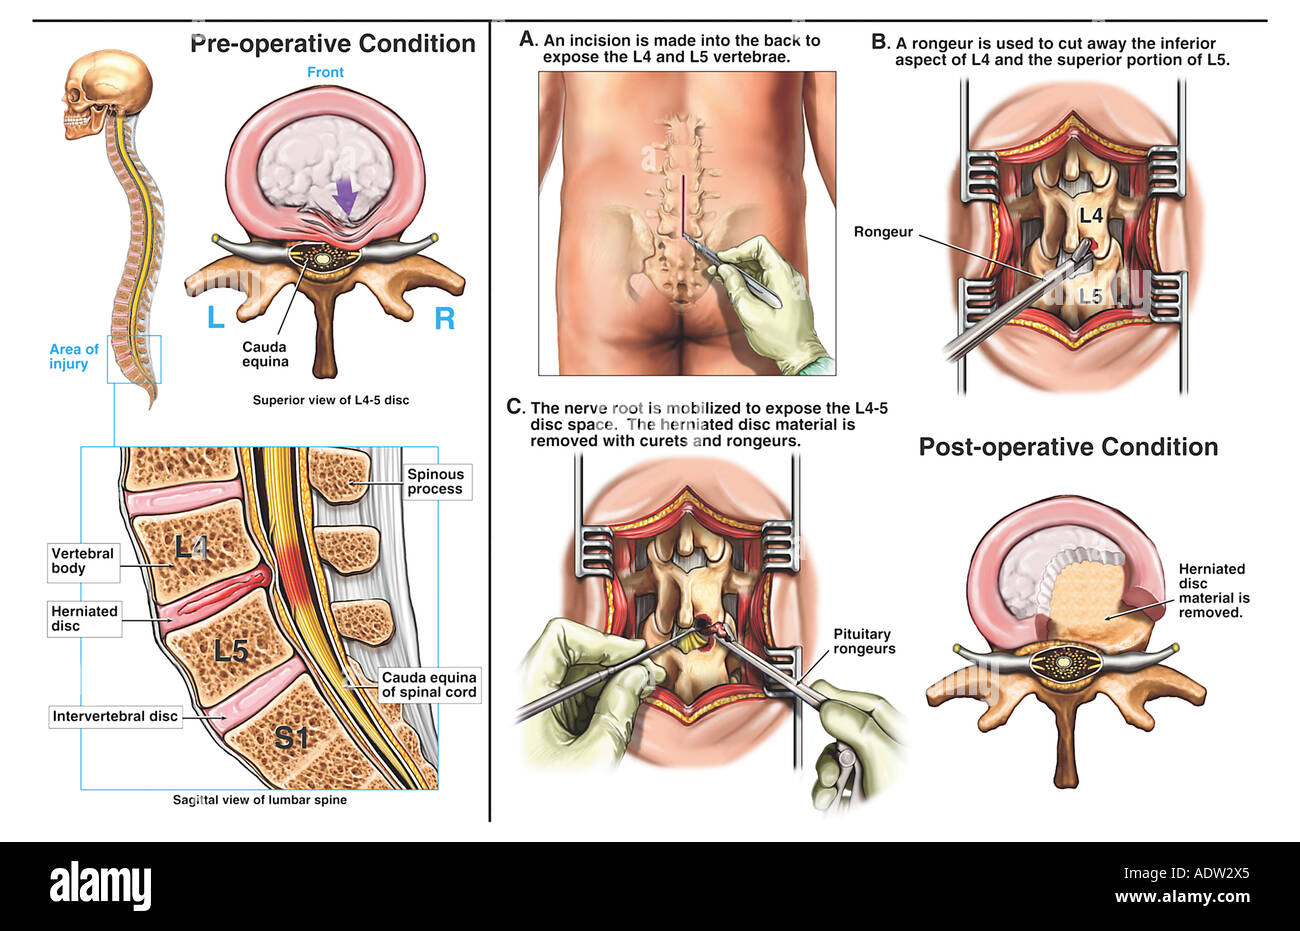 Spine Surgery - L4-5 Disc Herniation with Discectomy (Diskectomy ...